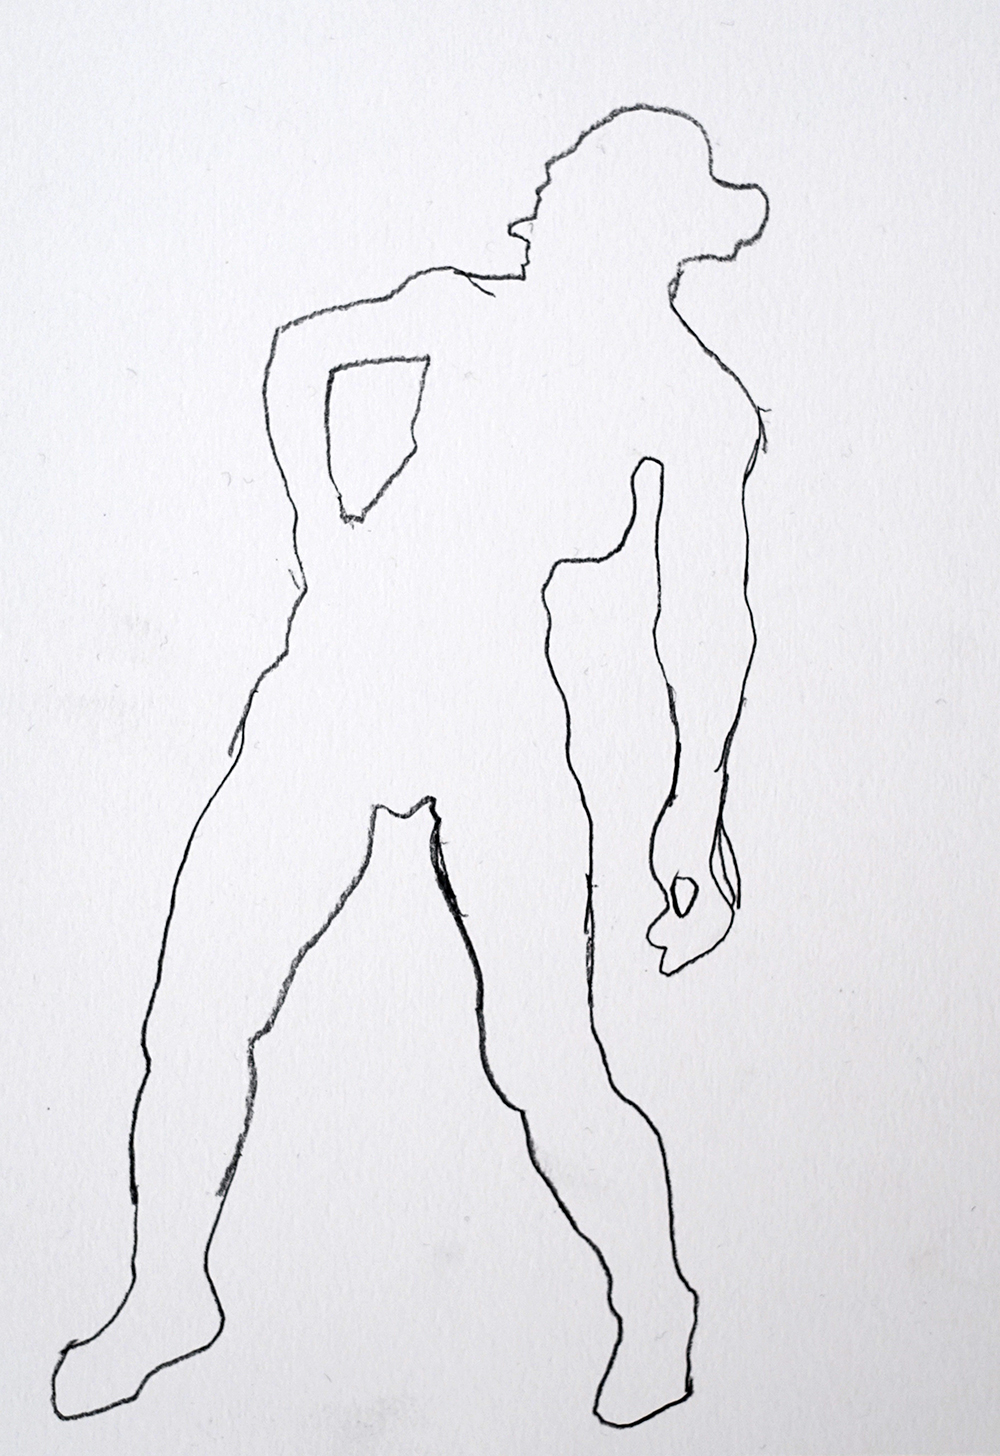 Silhouette drawing of life model